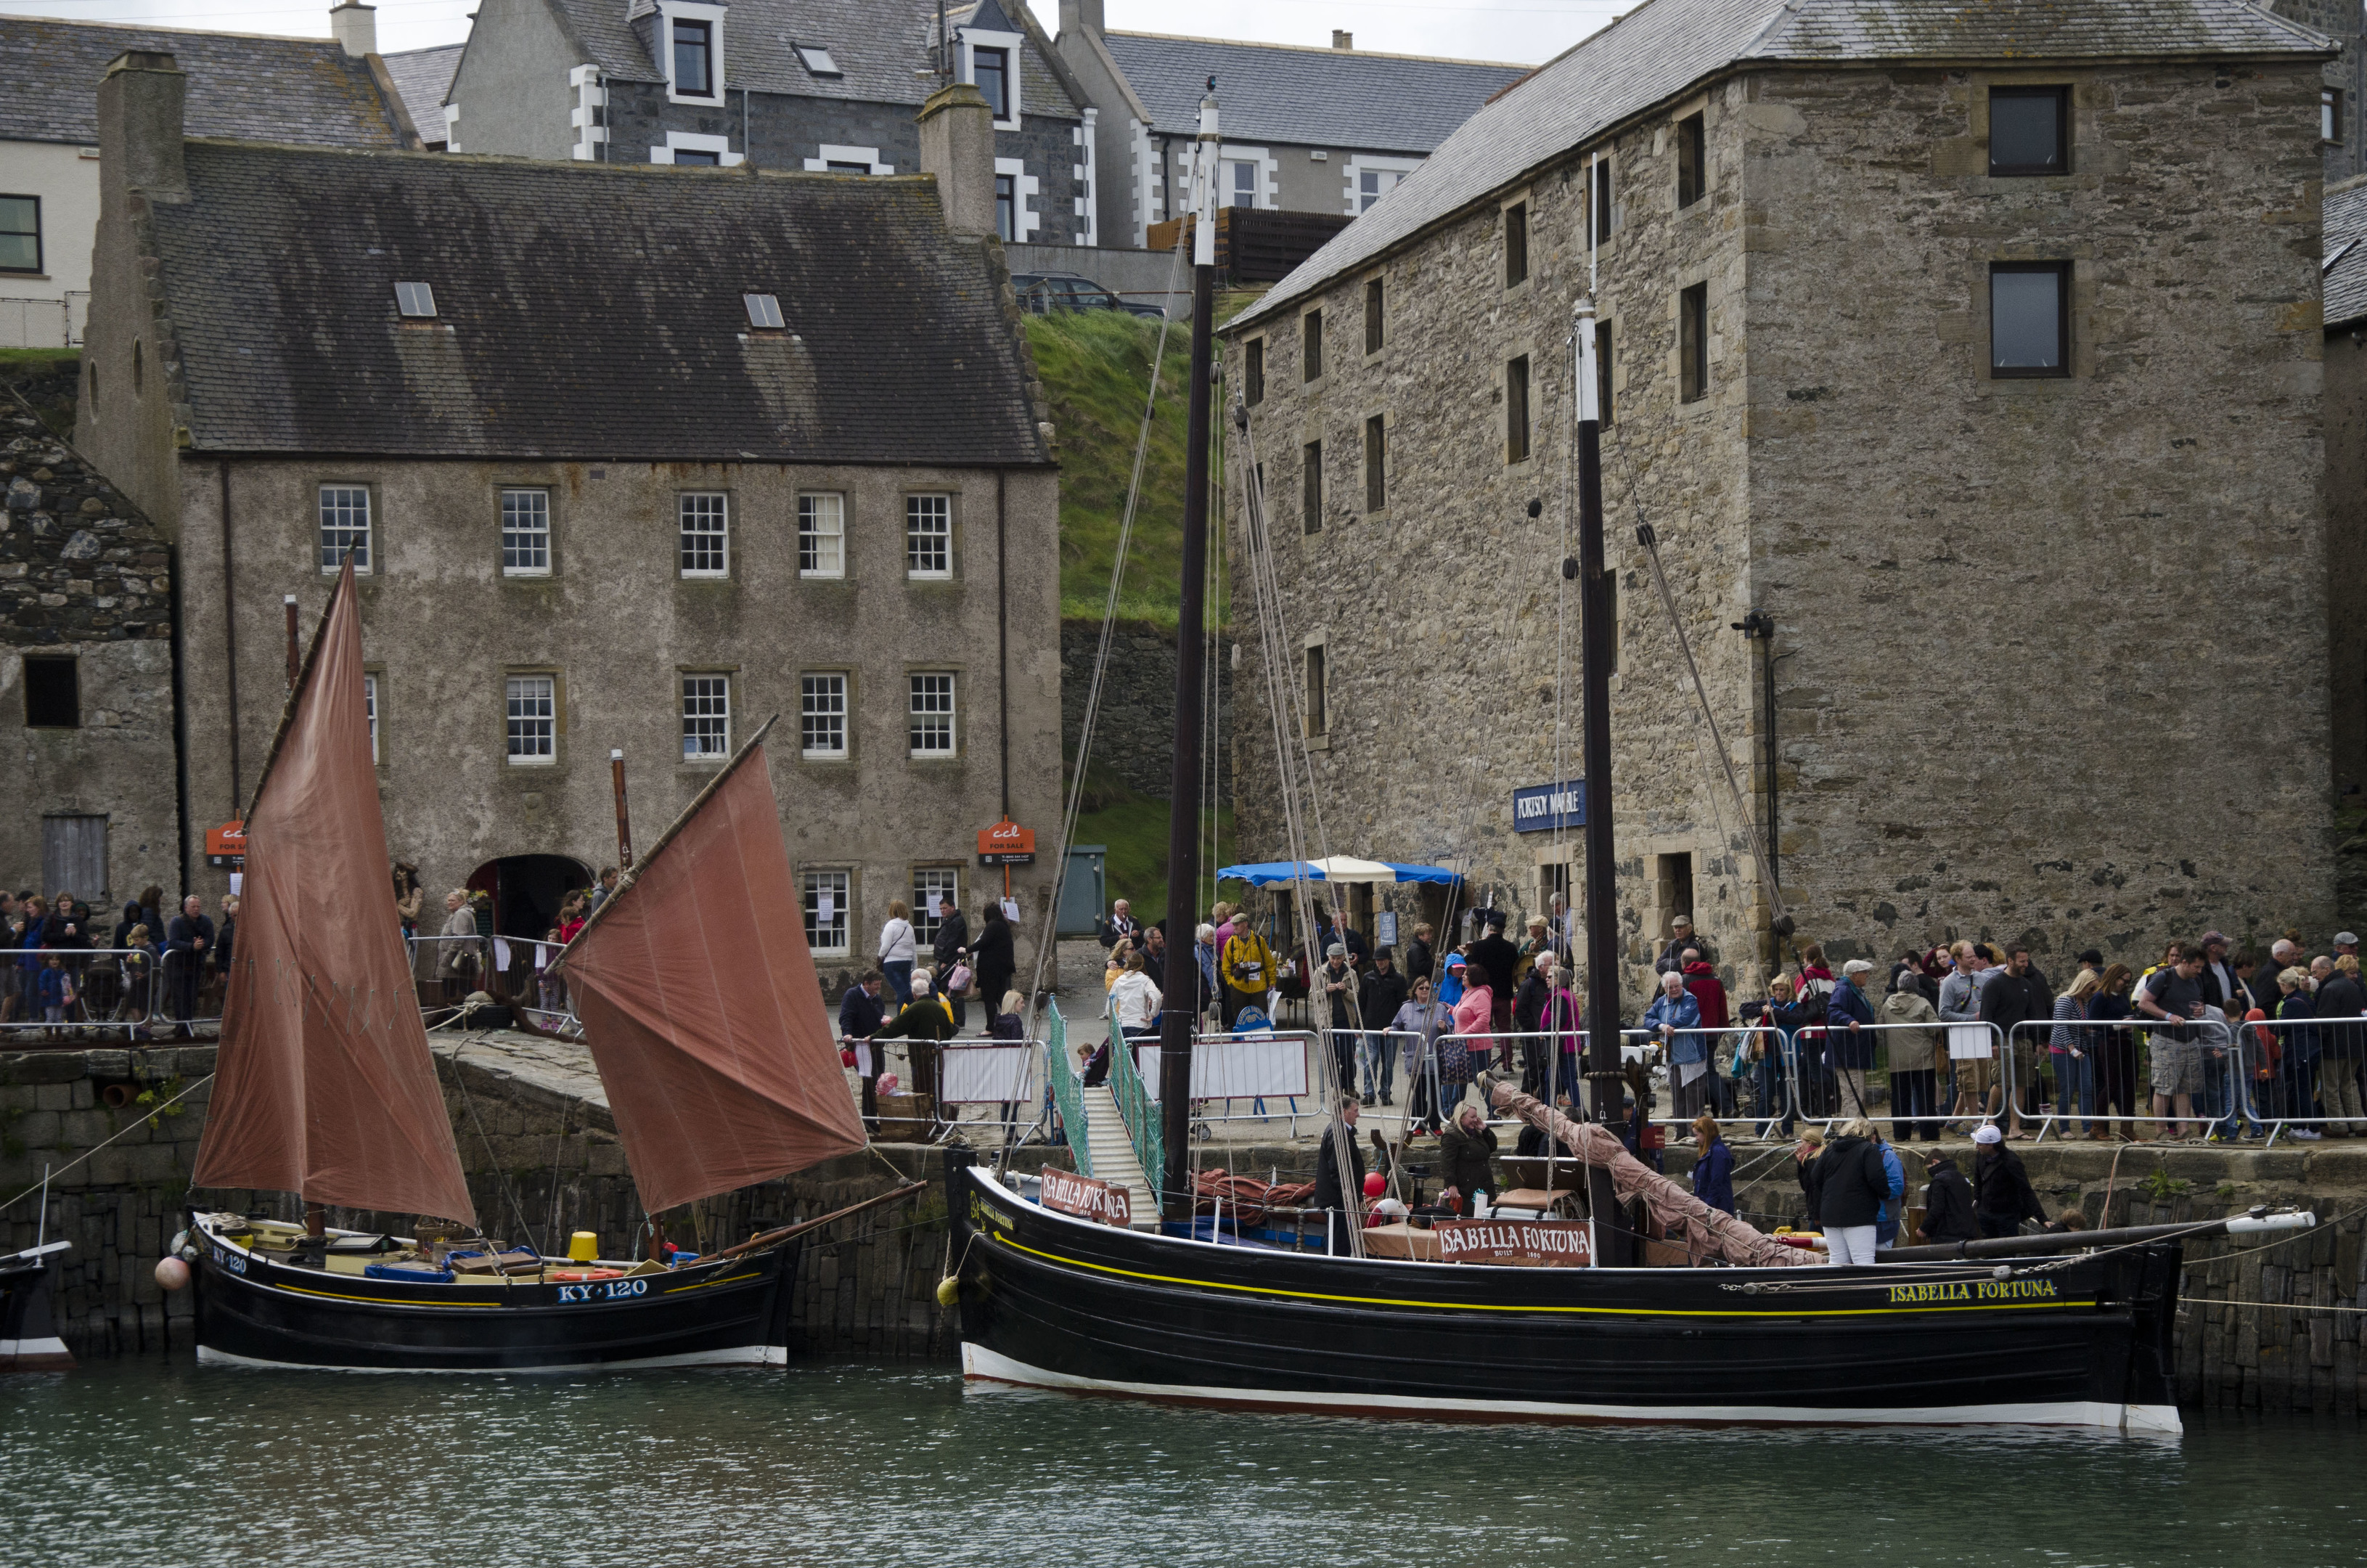 The Scottish Traditional Boat Festival takes place at Portsoy on June 24 and 25